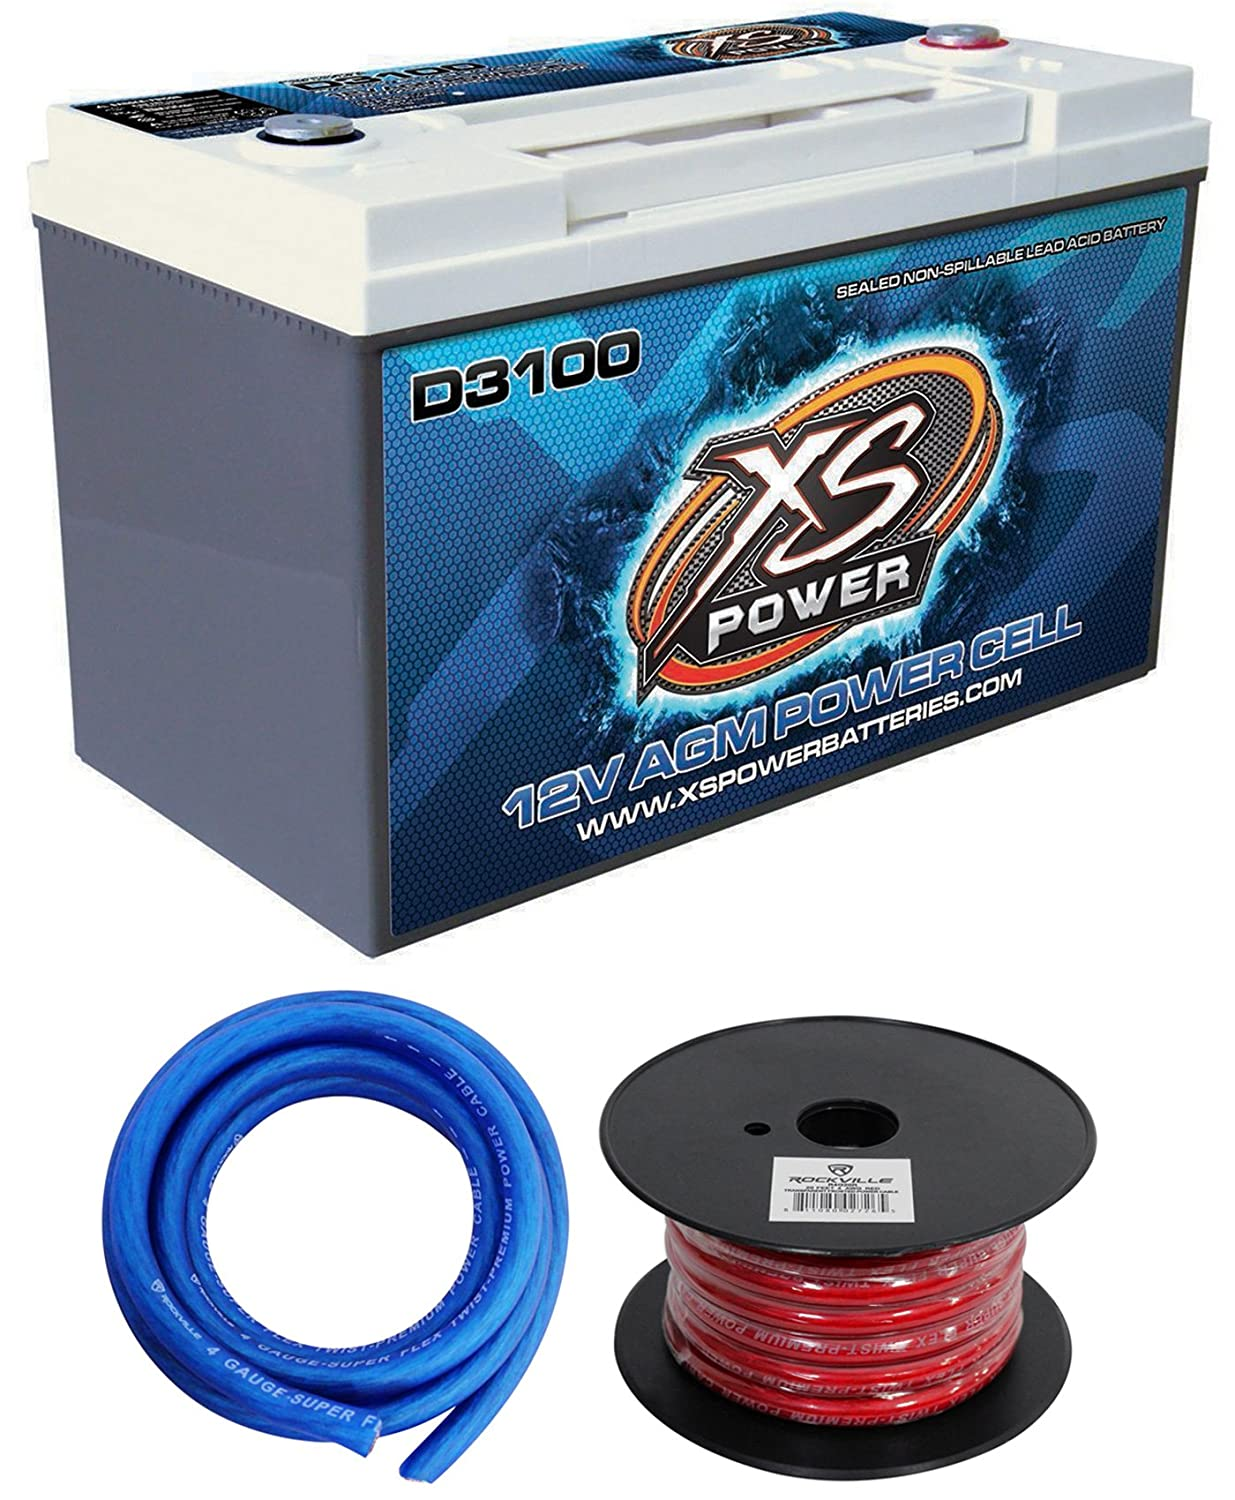 Xs Power D3100 5000 Amp Cell Car Battery Gauge Amplifier Installation Wiring Kit Ofc Ebay Hardware Ground Wires Automotive